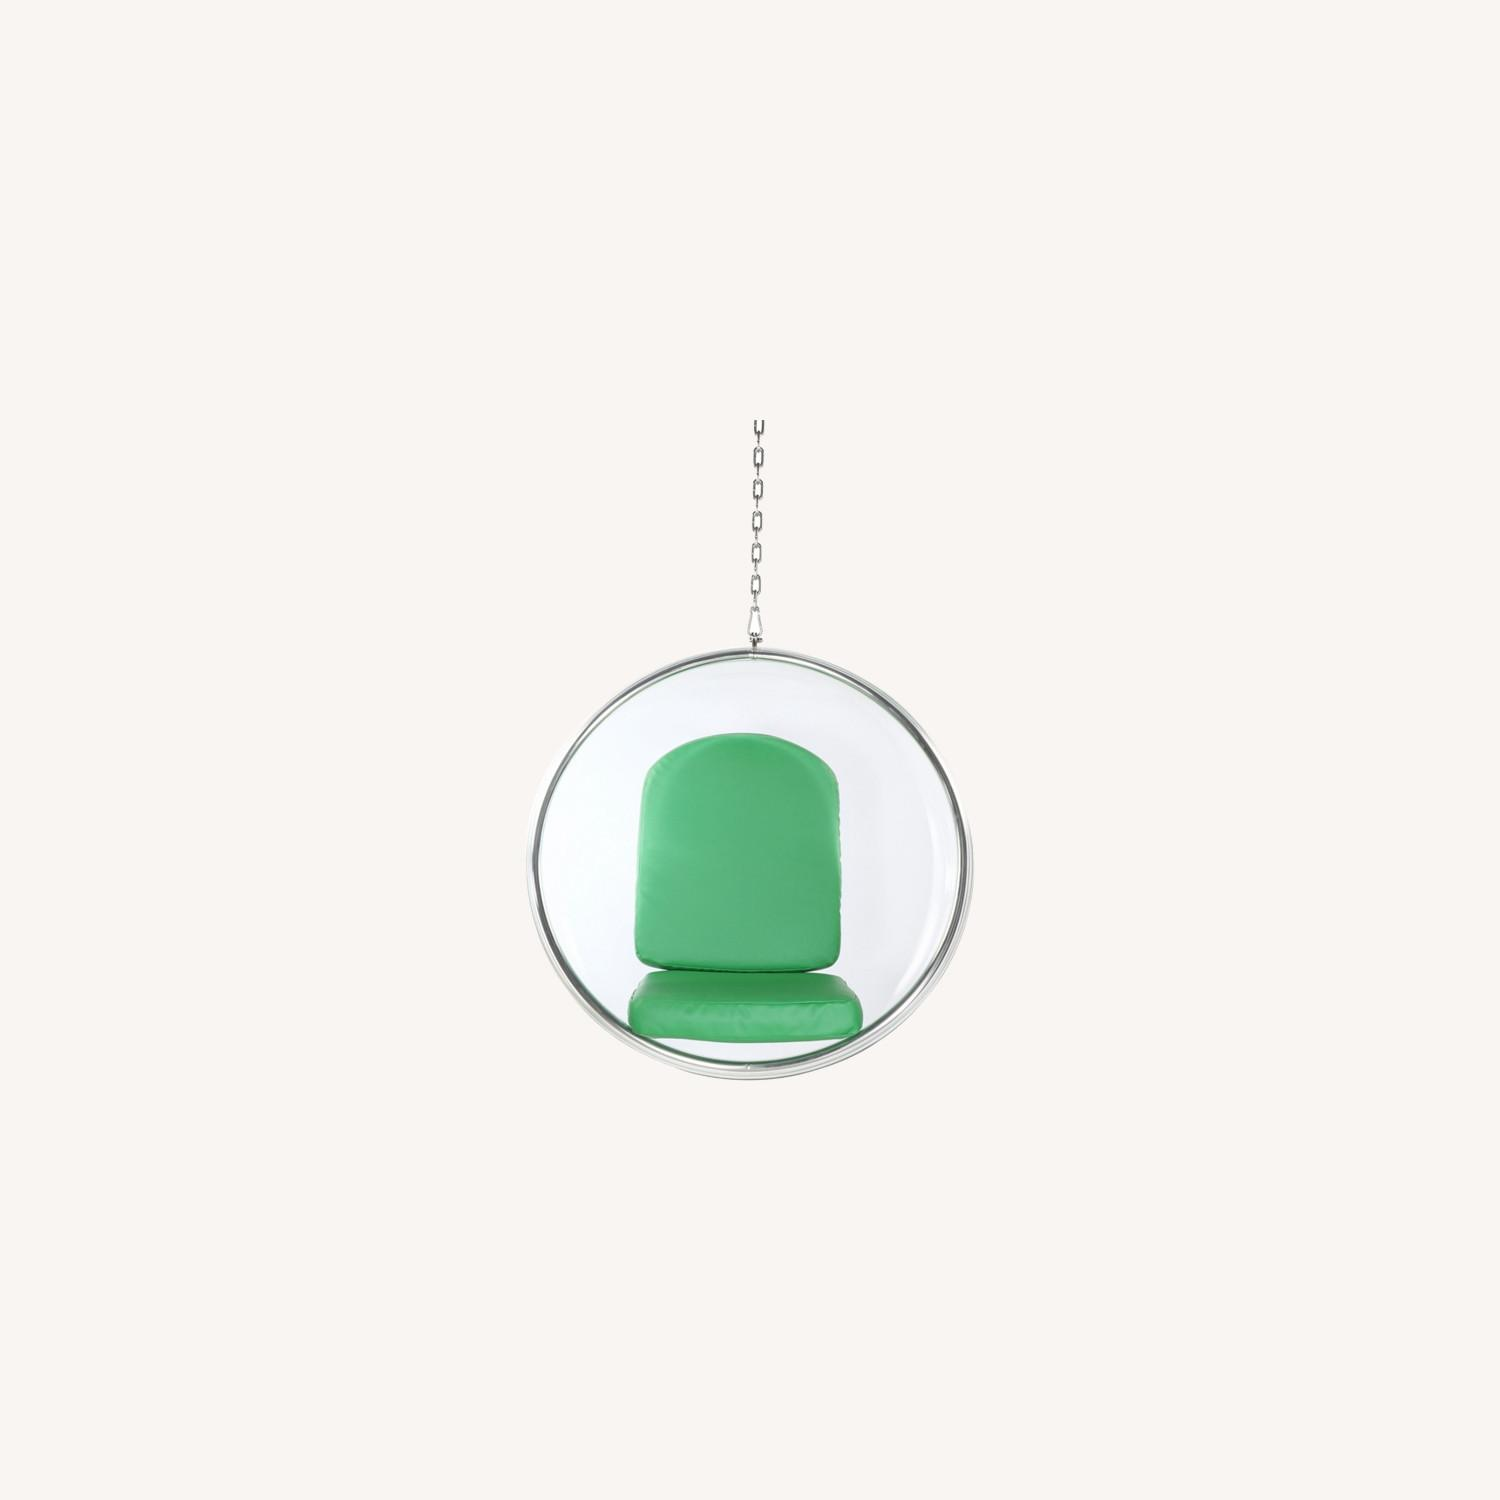 Hanging Chair In Clear Acrylic & Green PU Leather - image-7